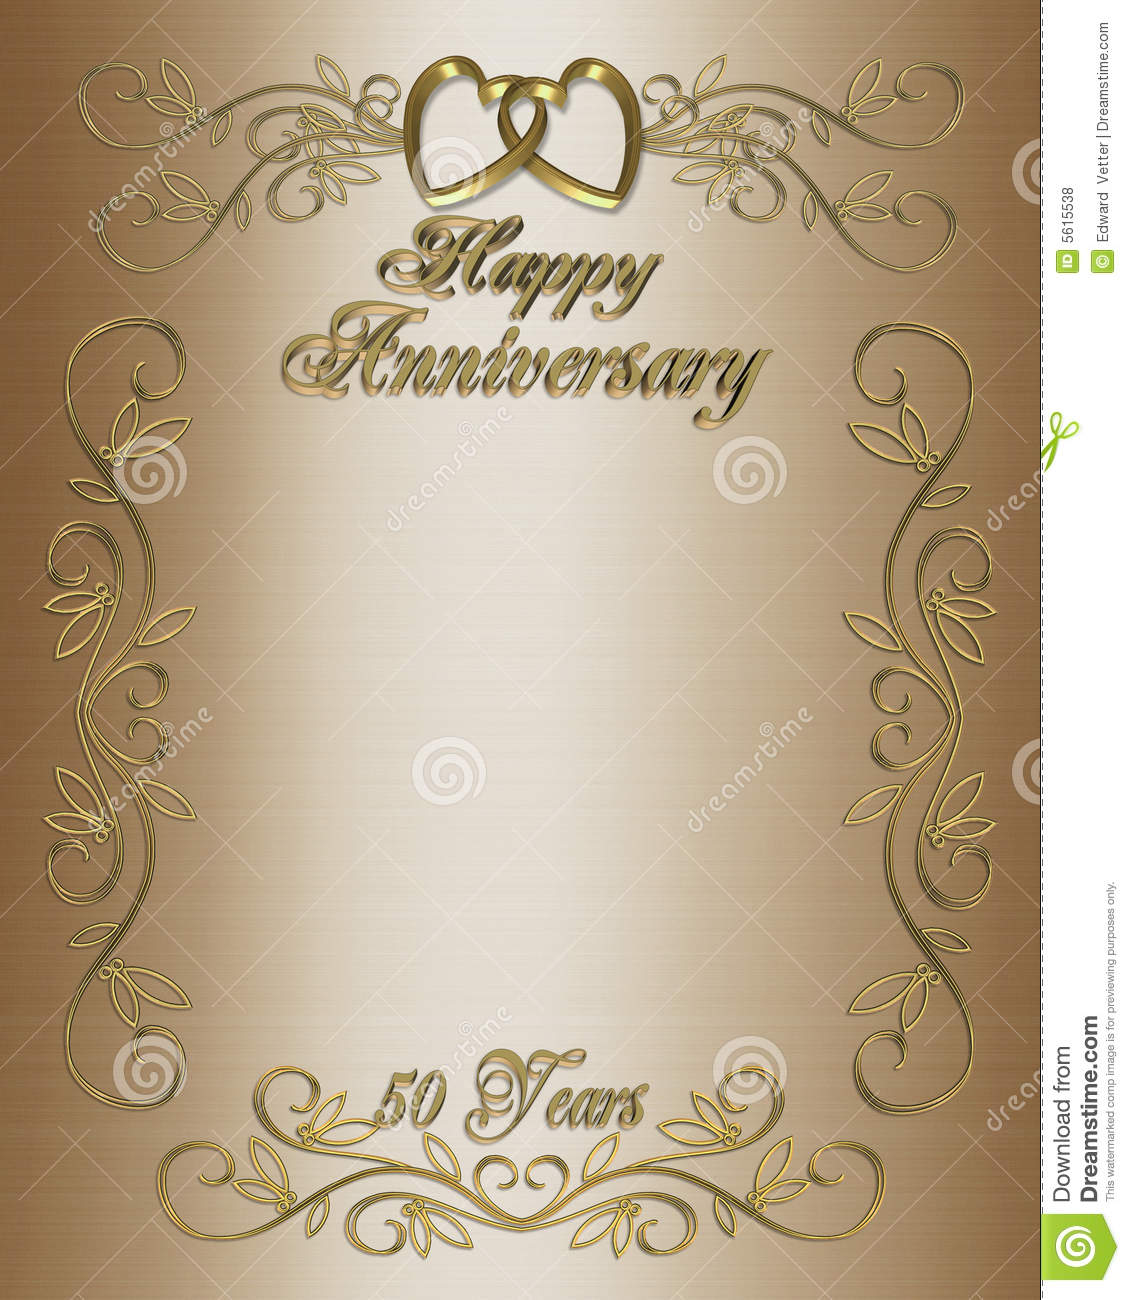 Th Wedding Anniversary Invitation Templates Free Printable - Wedding invitation templates: wedding anniversary invitation templates